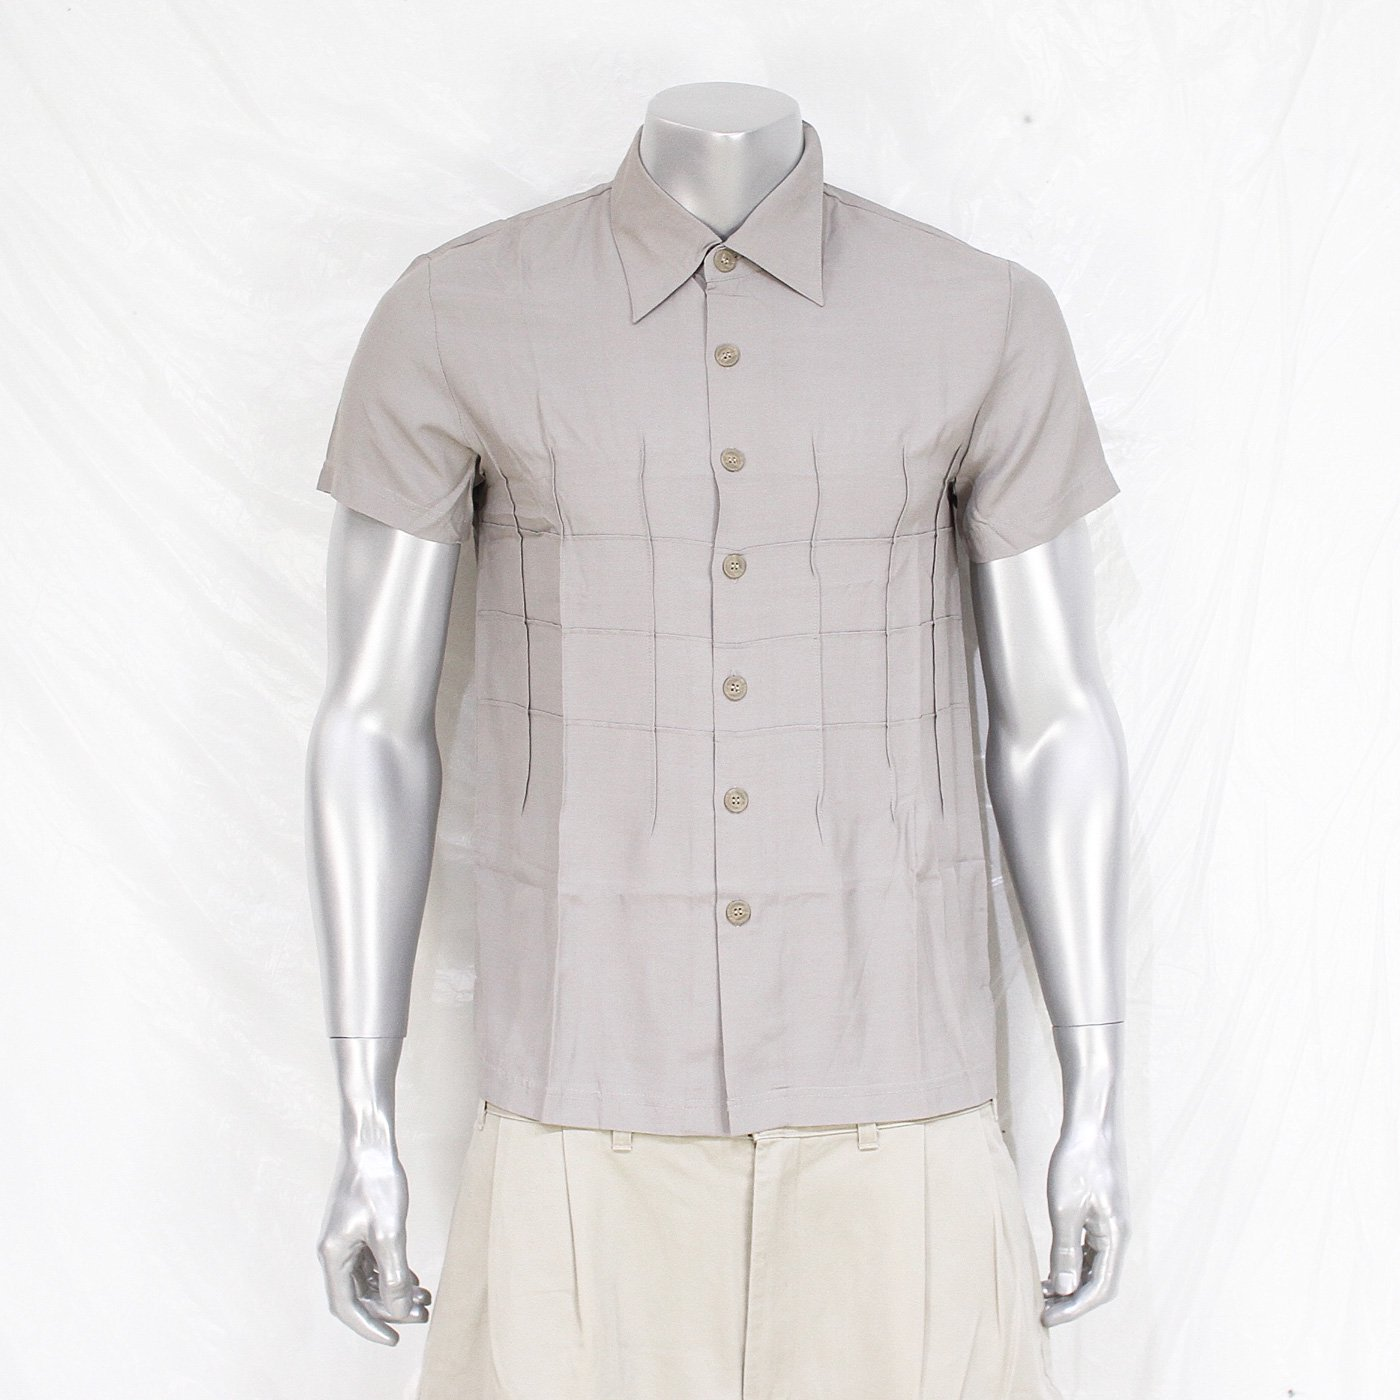 NETWORK NATURE RAYON SHIRTS